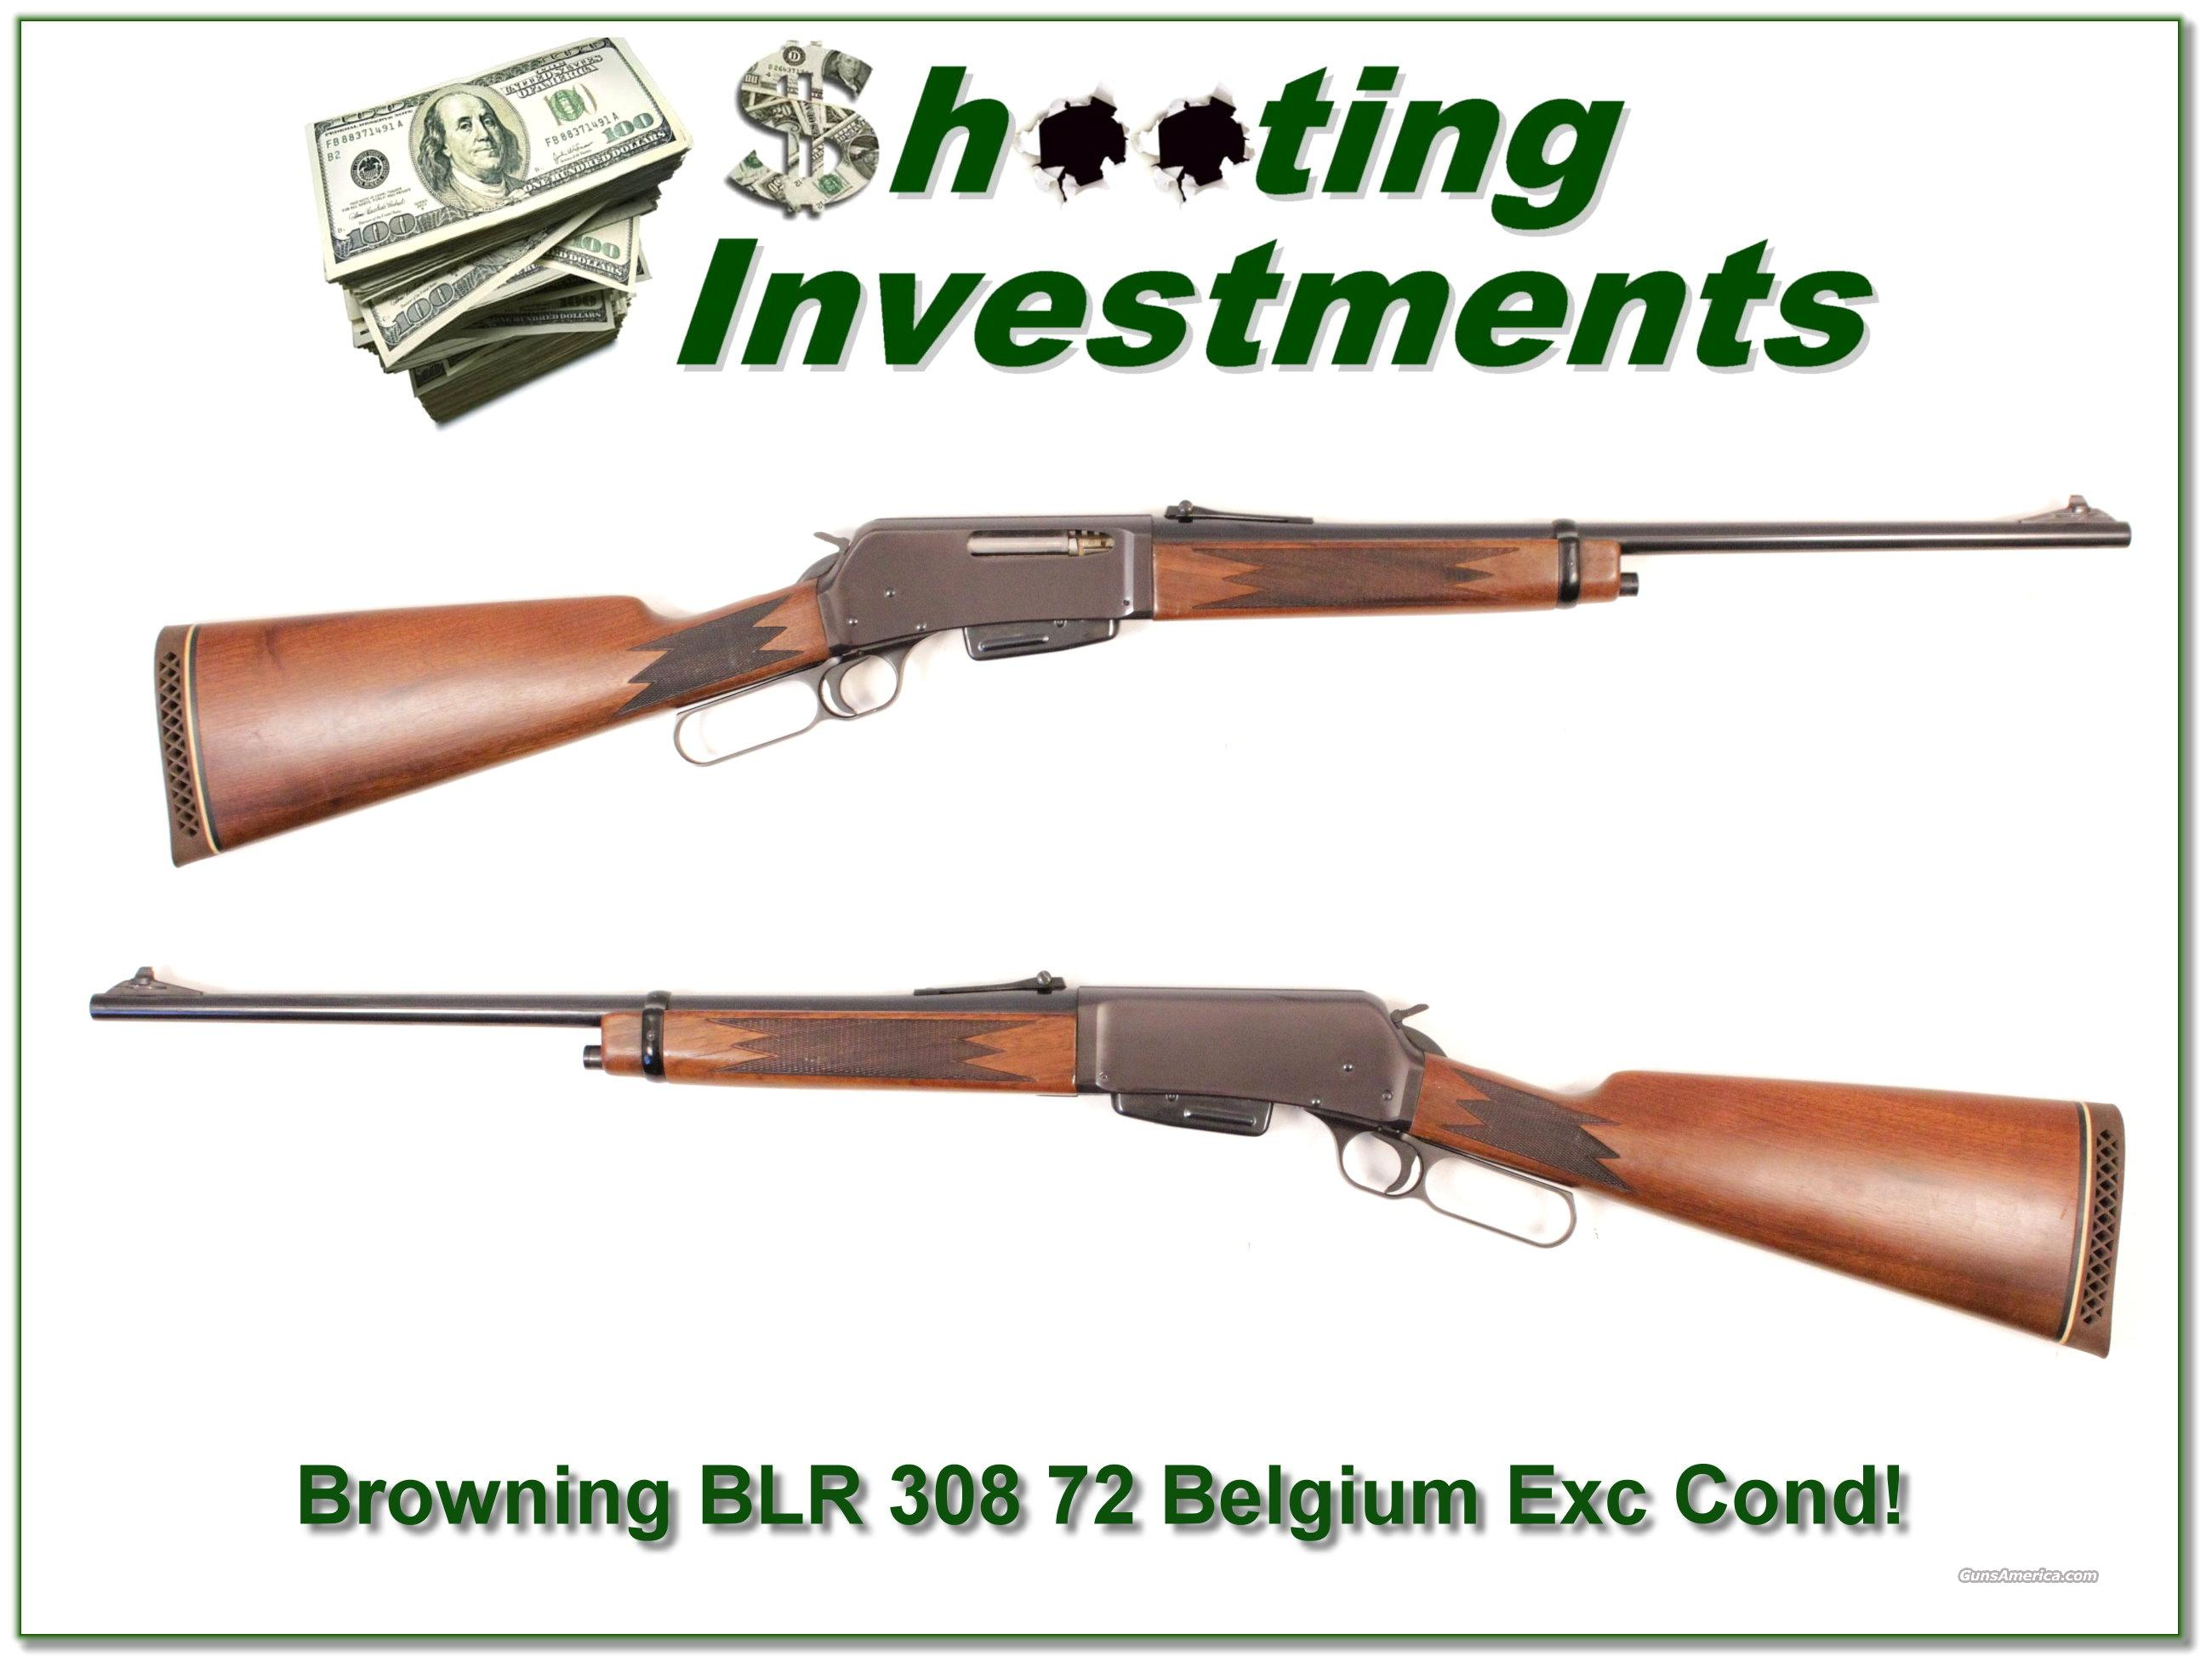 Browning BLR '72 Belgium made 308 Exc Cond!  Guns > Rifles > Browning Rifles > Lever Action